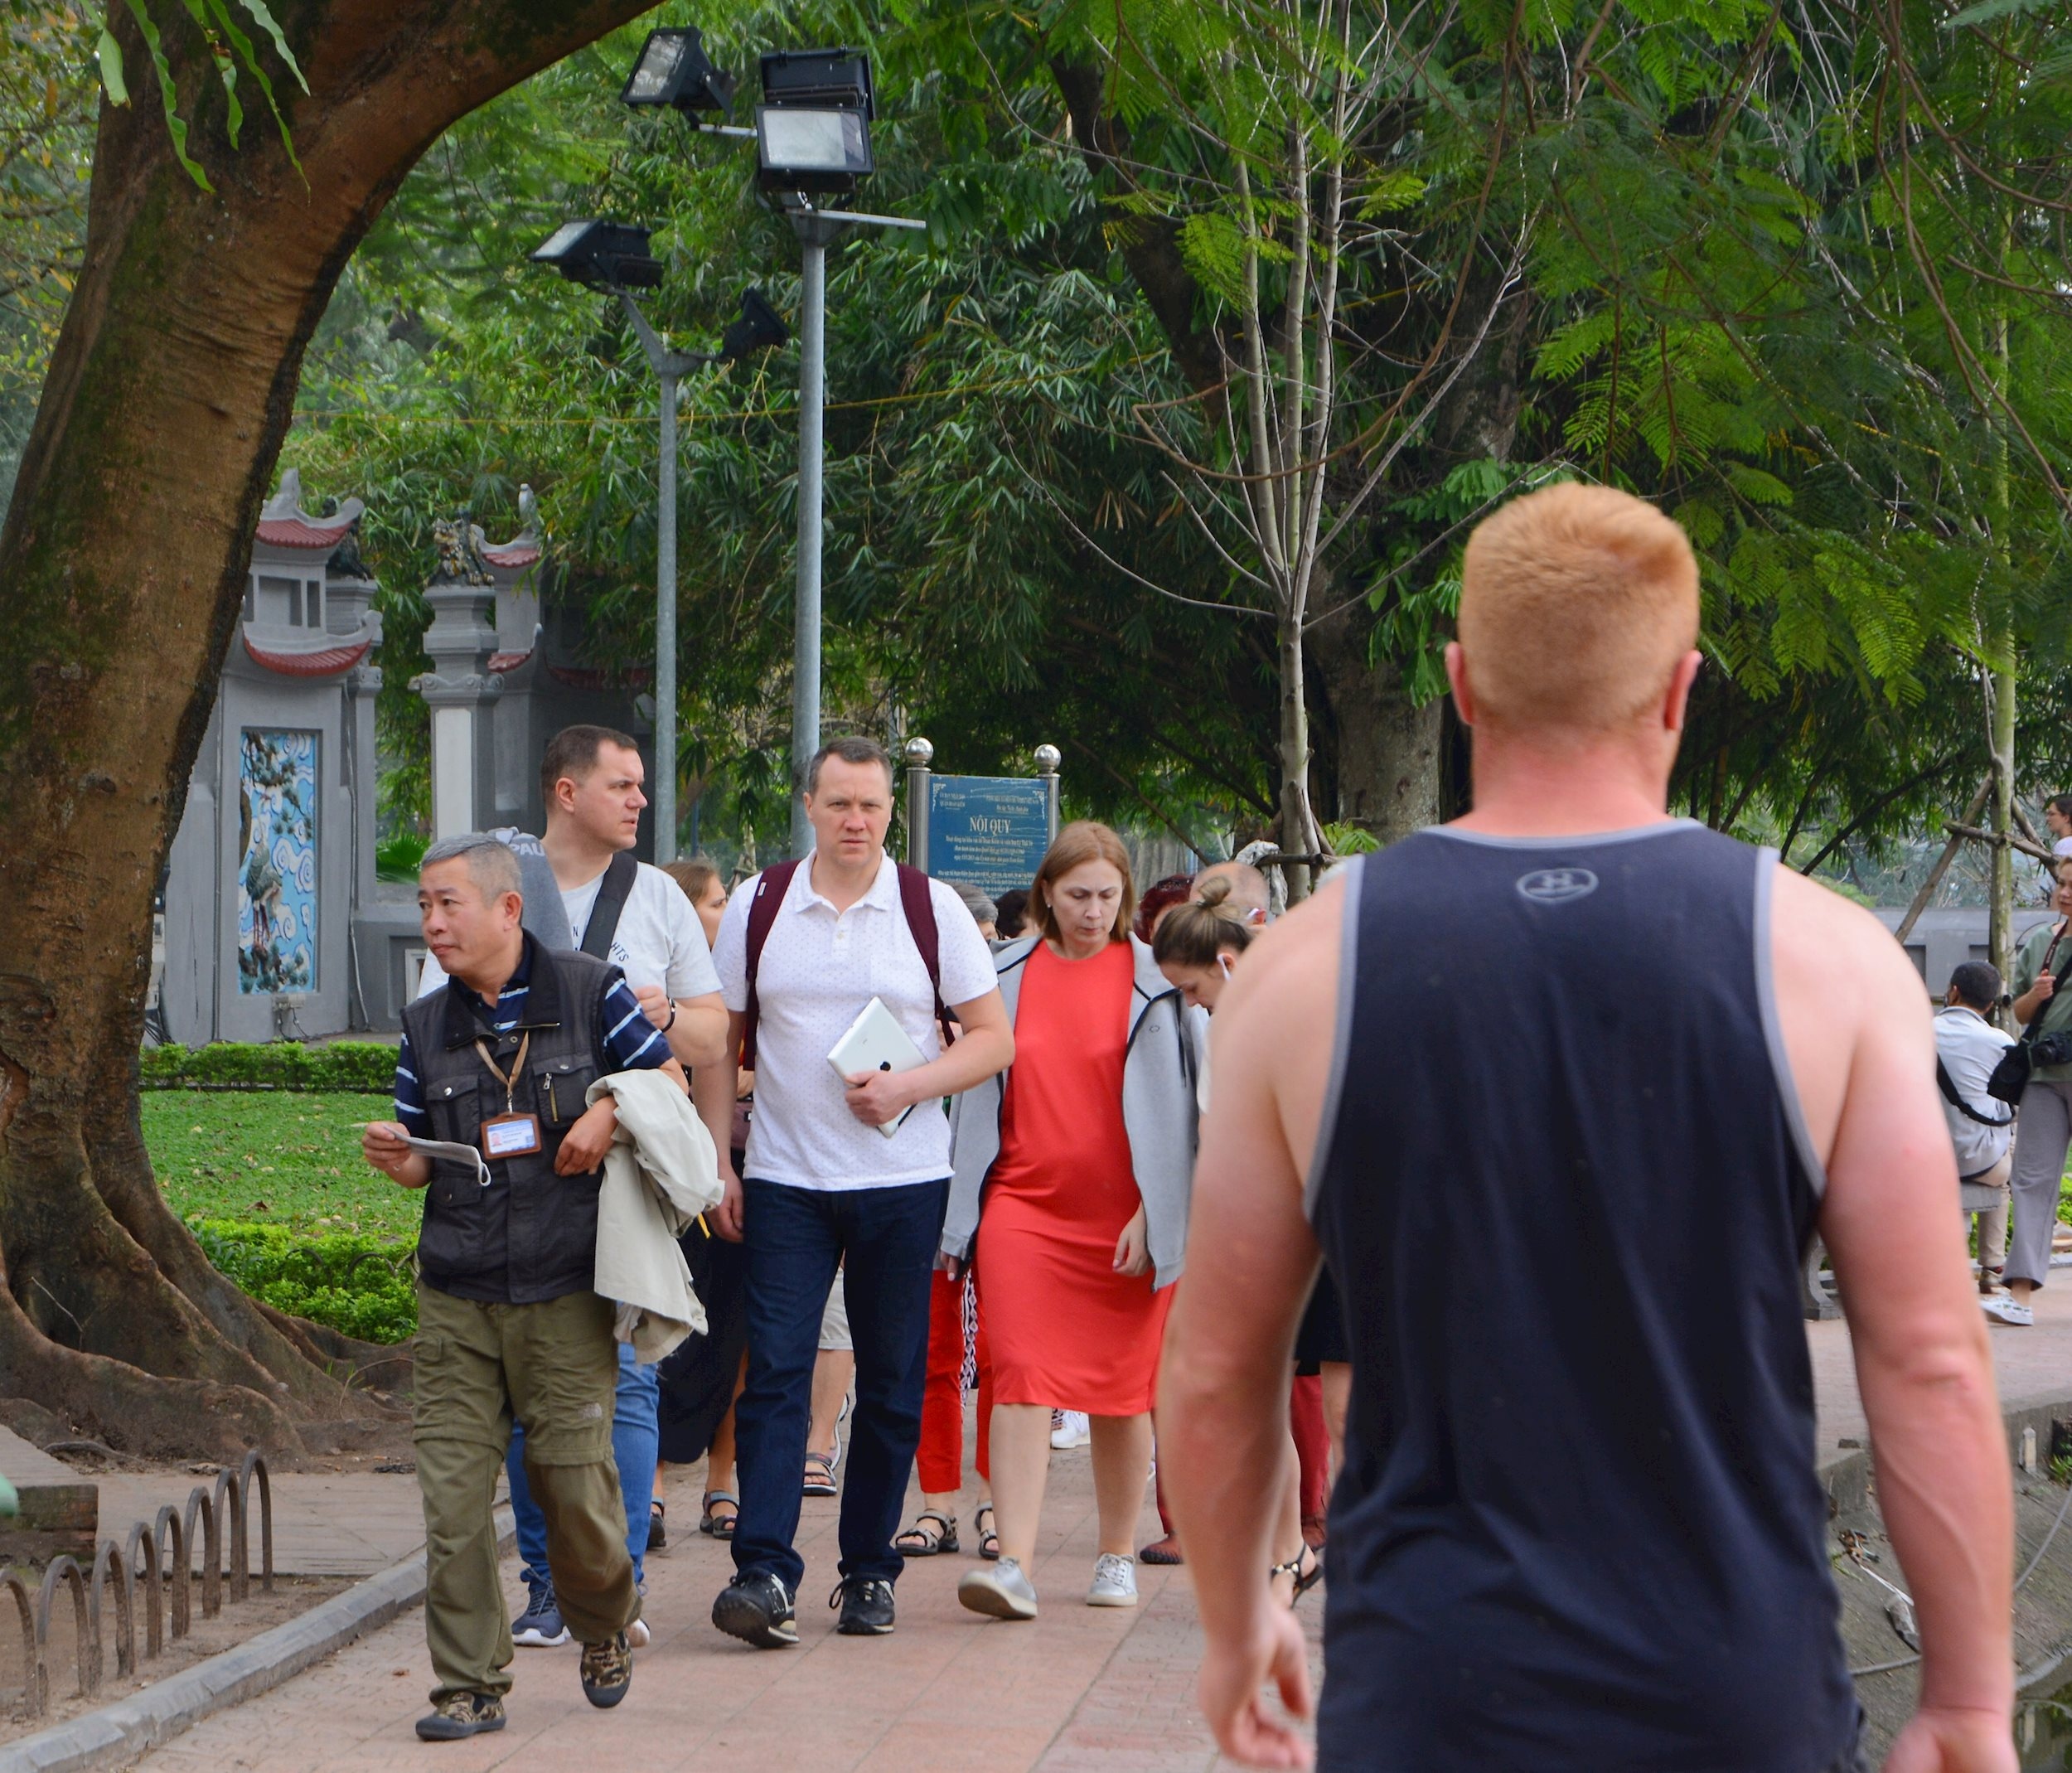 Discrimination against foreign tourists would be punished